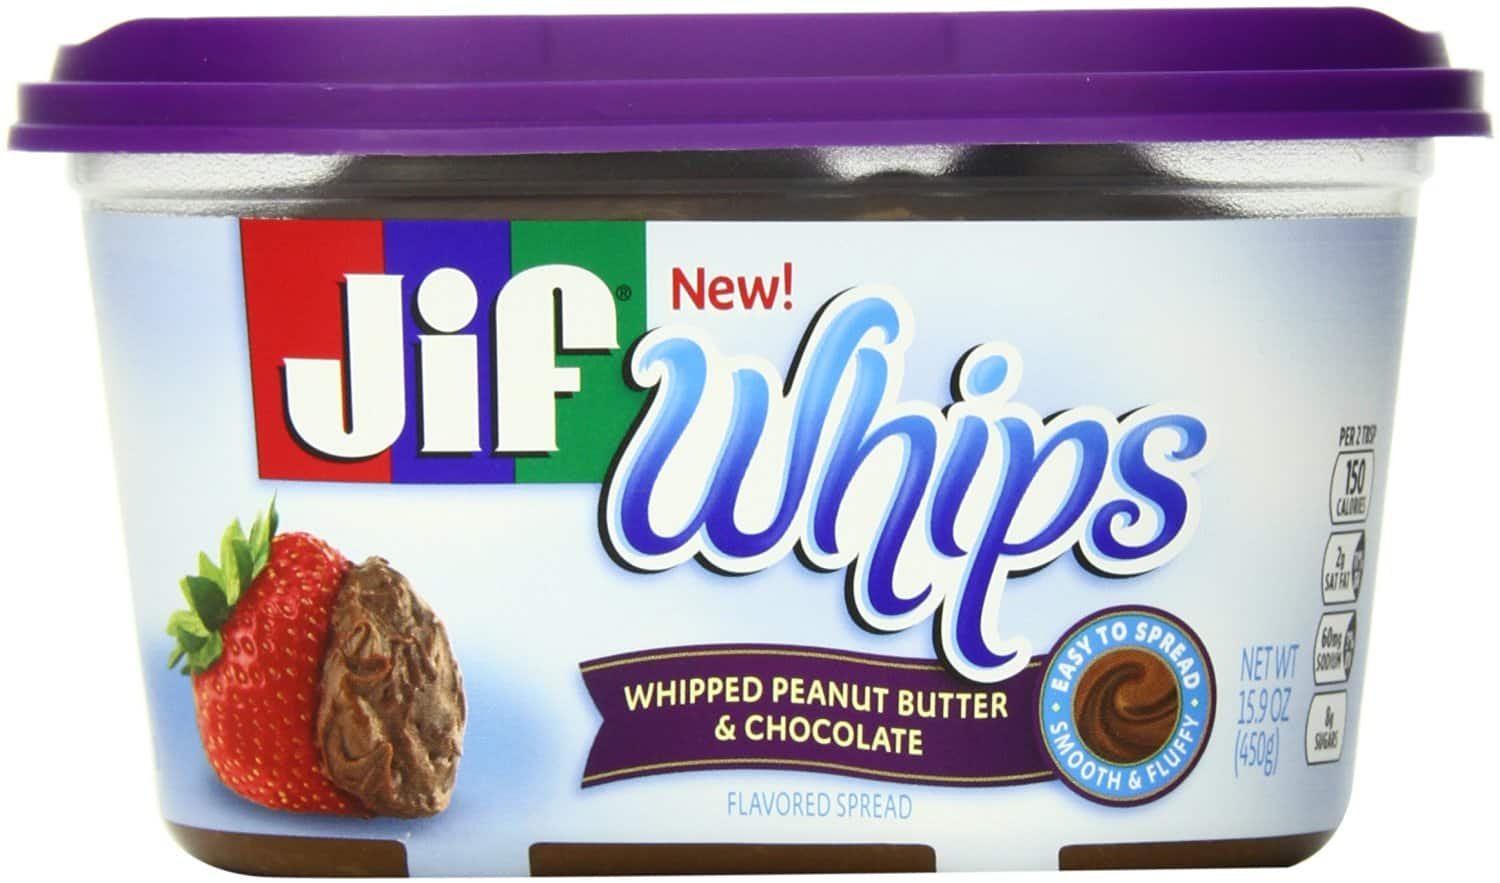 Jif Whipped Peanut Butter and Chocolate Flavored Spread (15.9oz) $2.81 + Free Shipping @Amazon